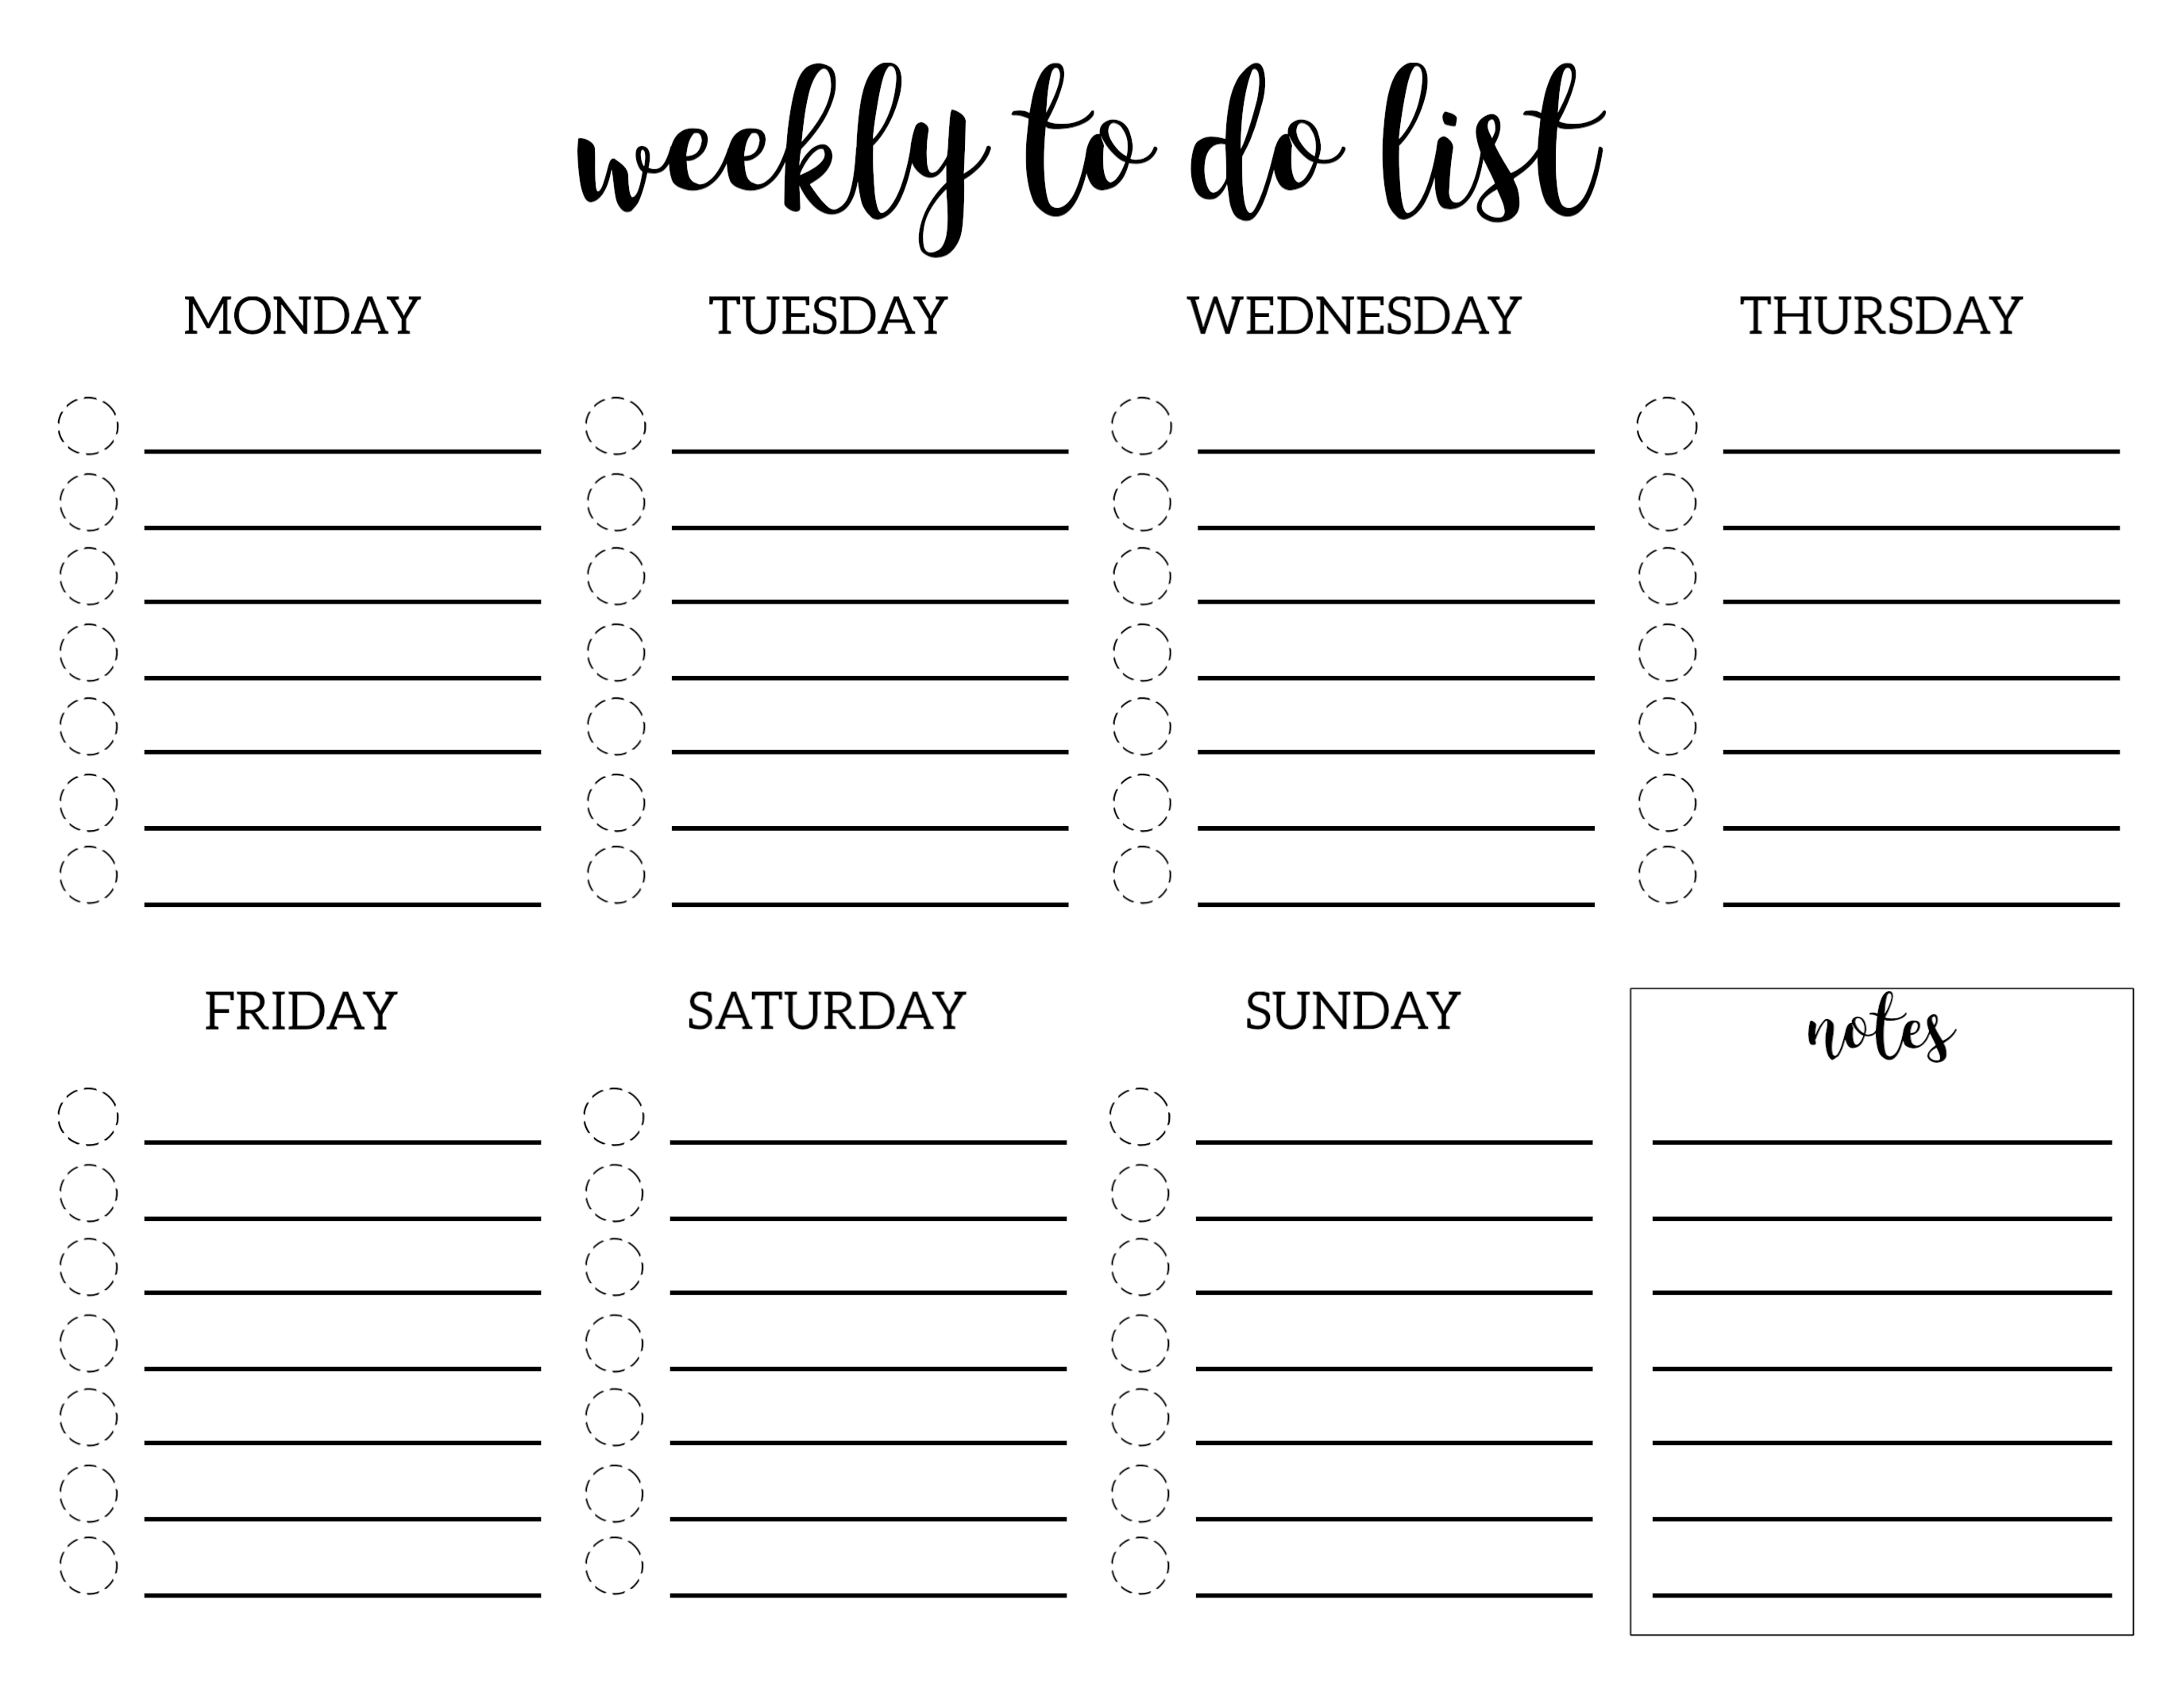 Weekly To Do List Printable Checklist Template   Paper Trail Design